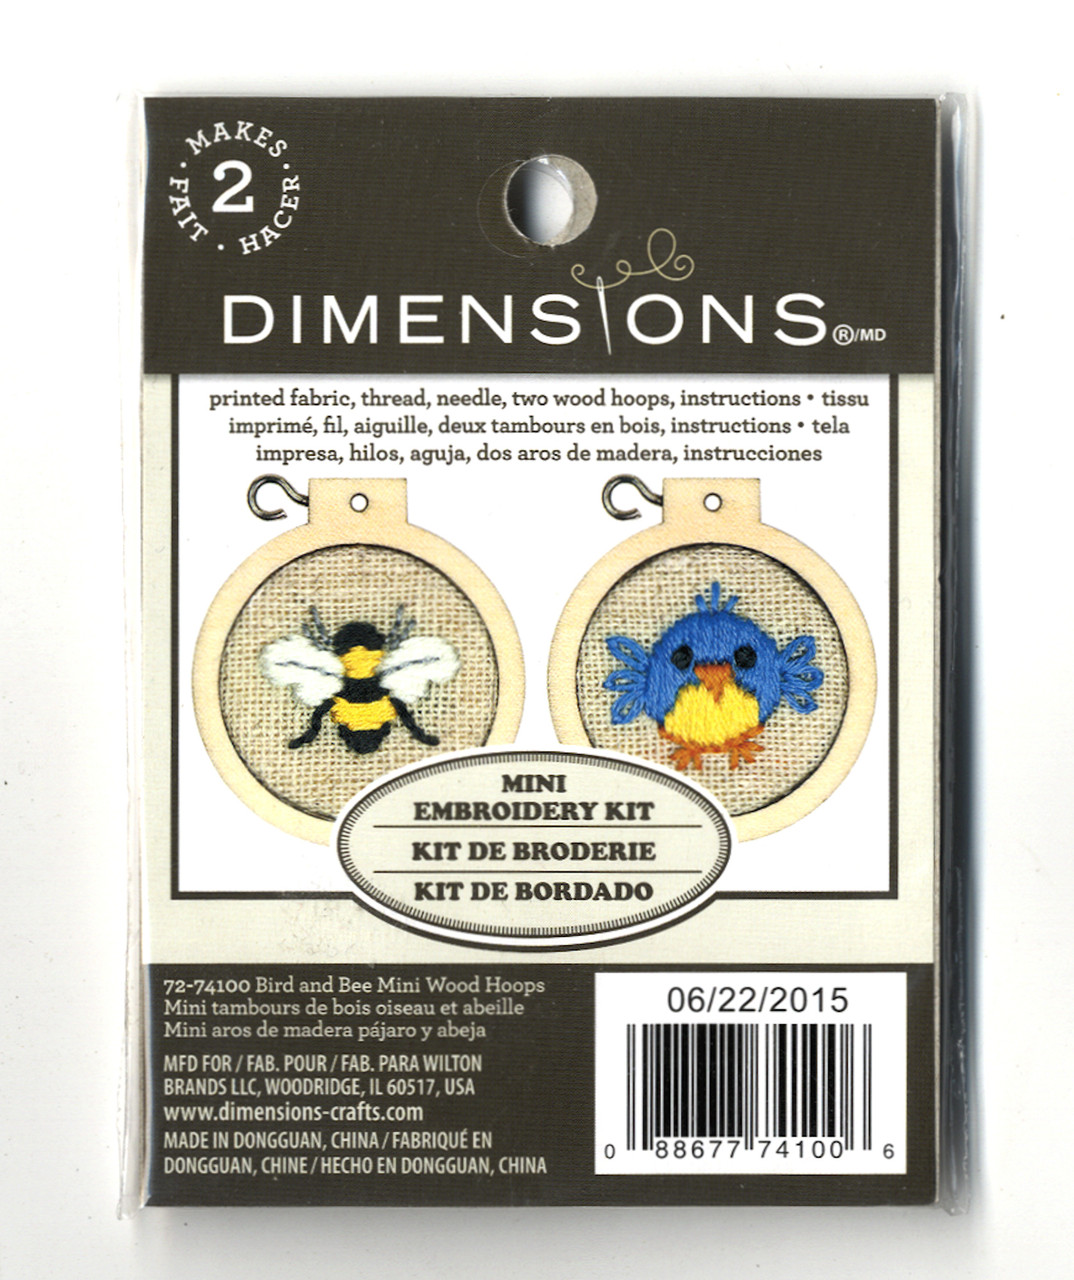 Dimensions Minis - Bird and Bee Mini Wood Hoops